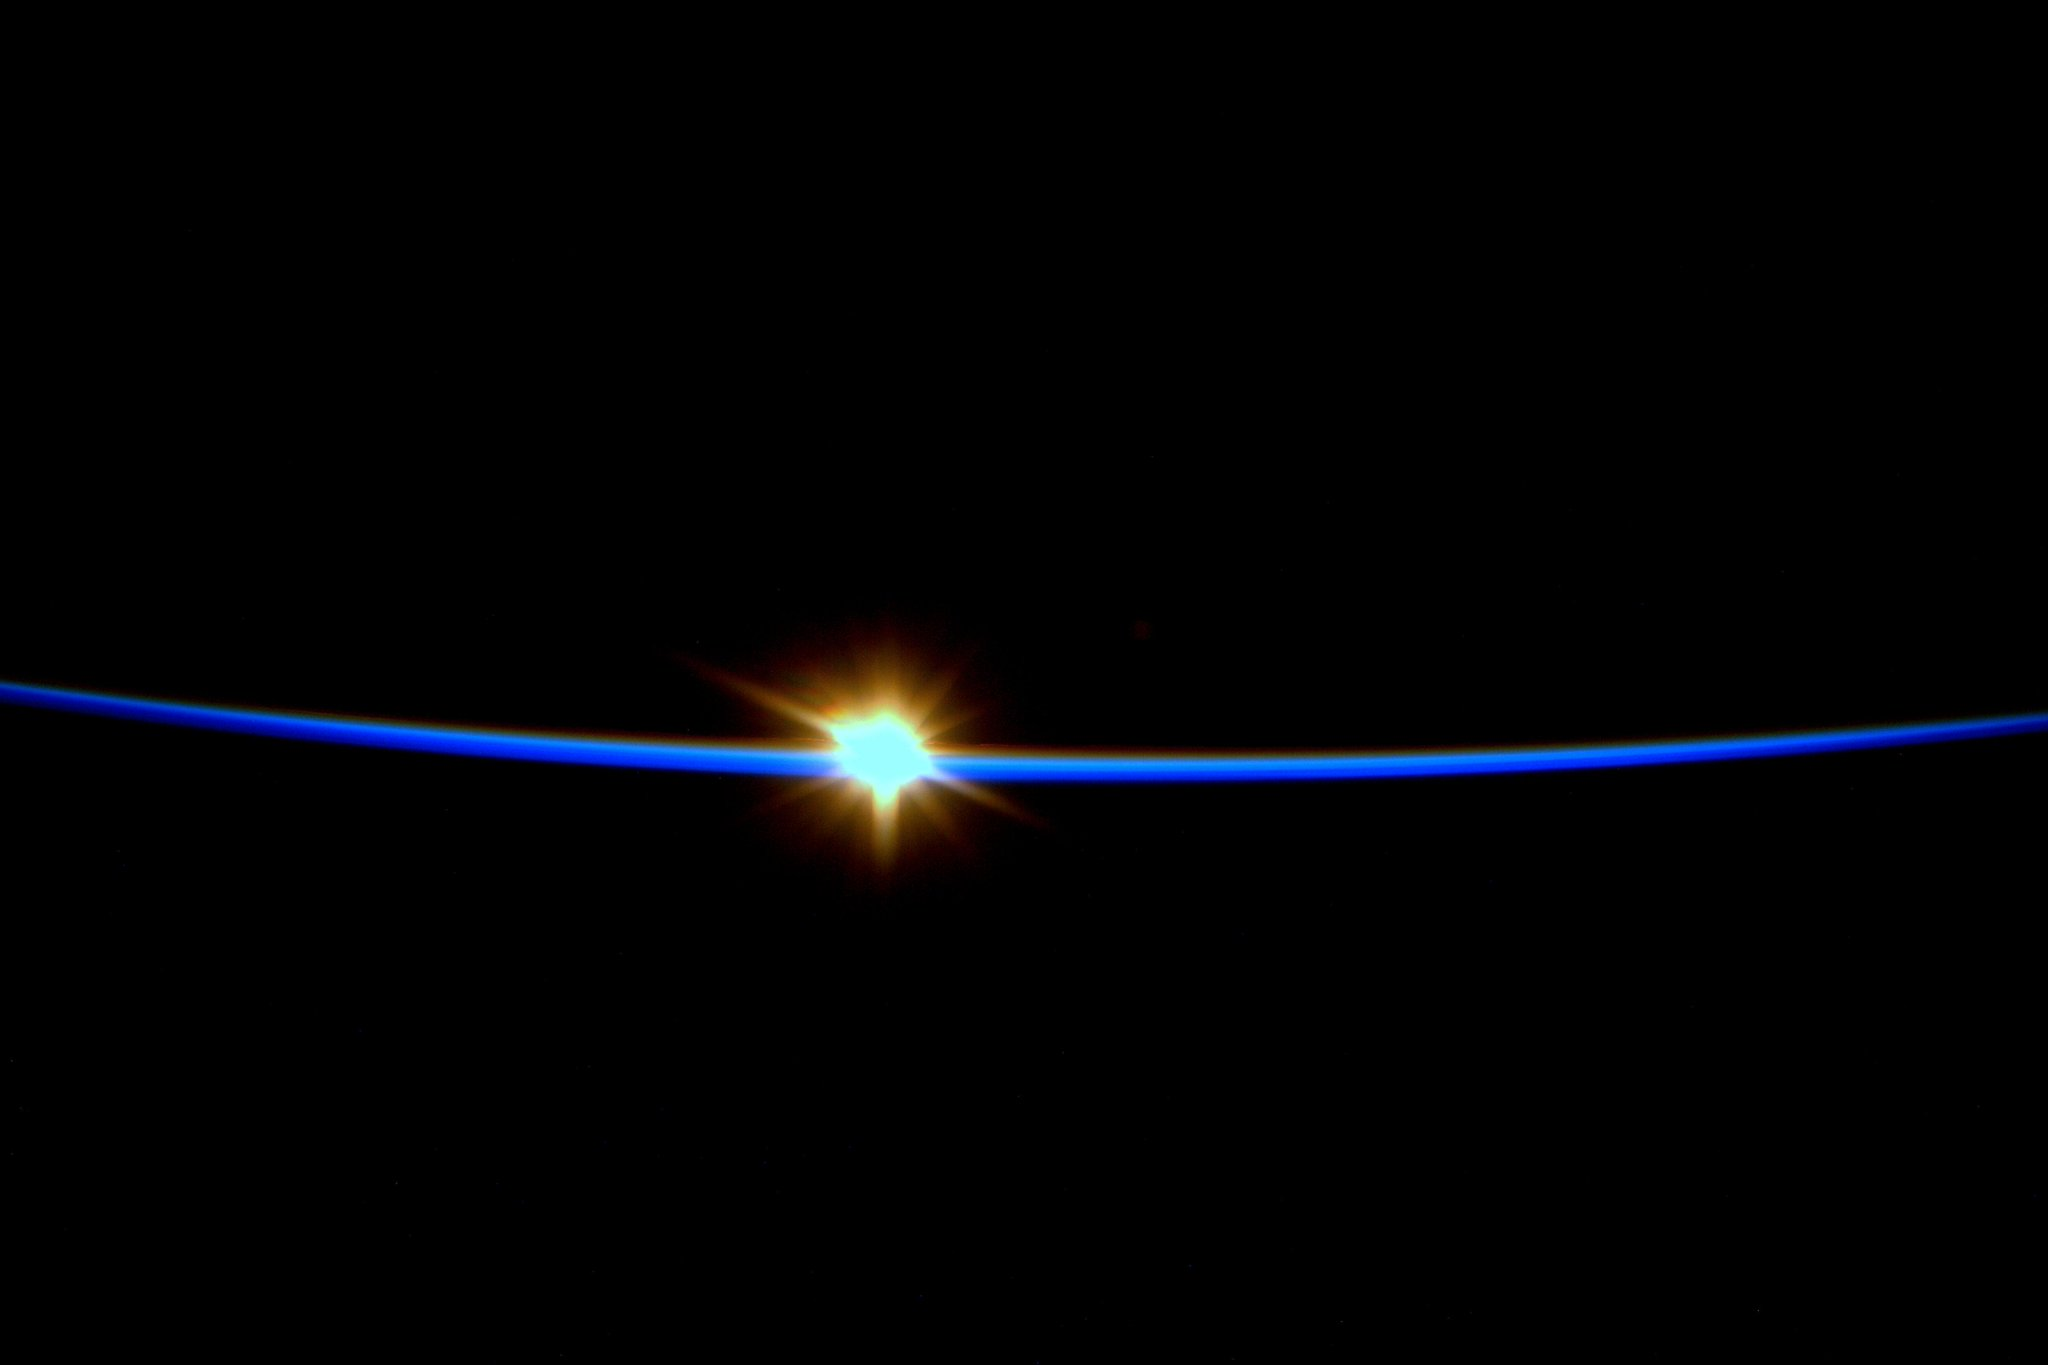 RT @AstroSamantha: Sunrise: I try to catch one every day. Reminds me of what a privilege it is to serve on humanity's outpost in space! http://t.co/2EfzjnCzW2